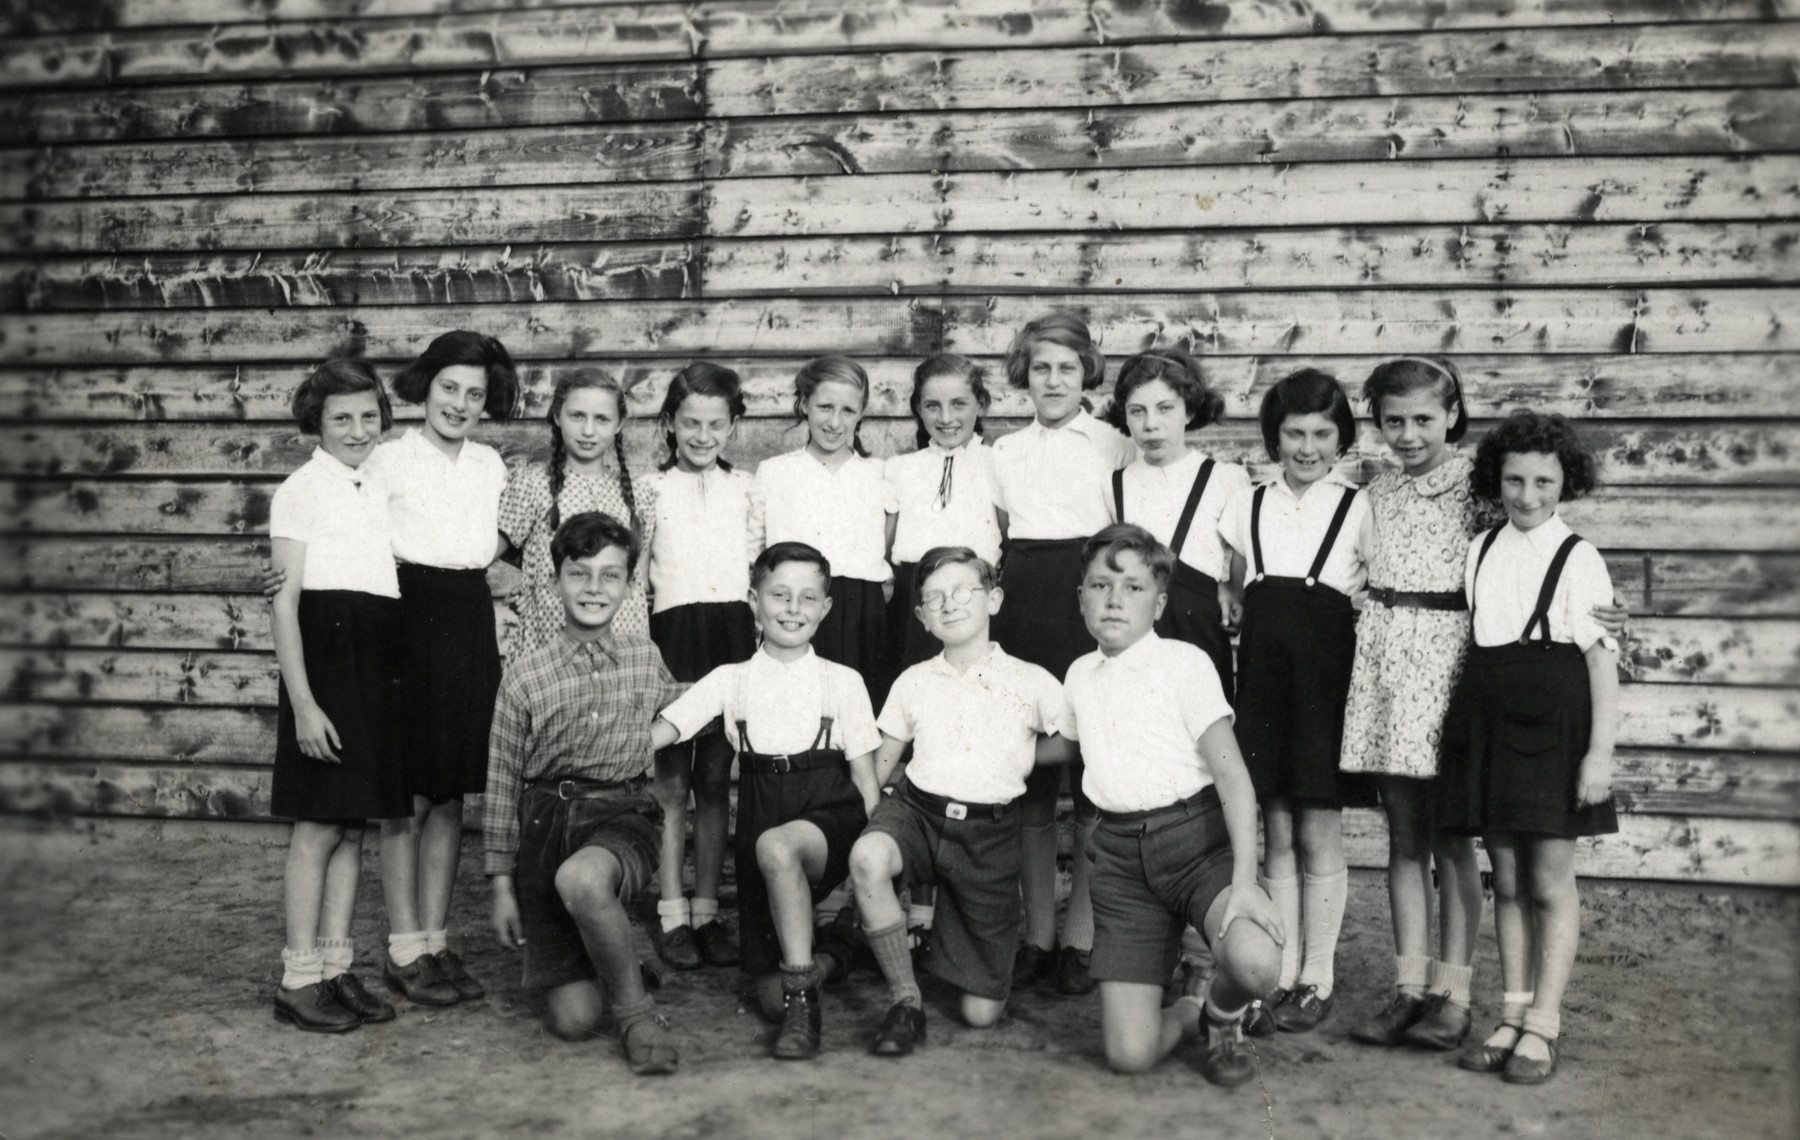 Group portrait of school children in the Westerbork refugee camp.  Sonni Birnbaum is standing third from the left and her sister Regina is standing second from the right.